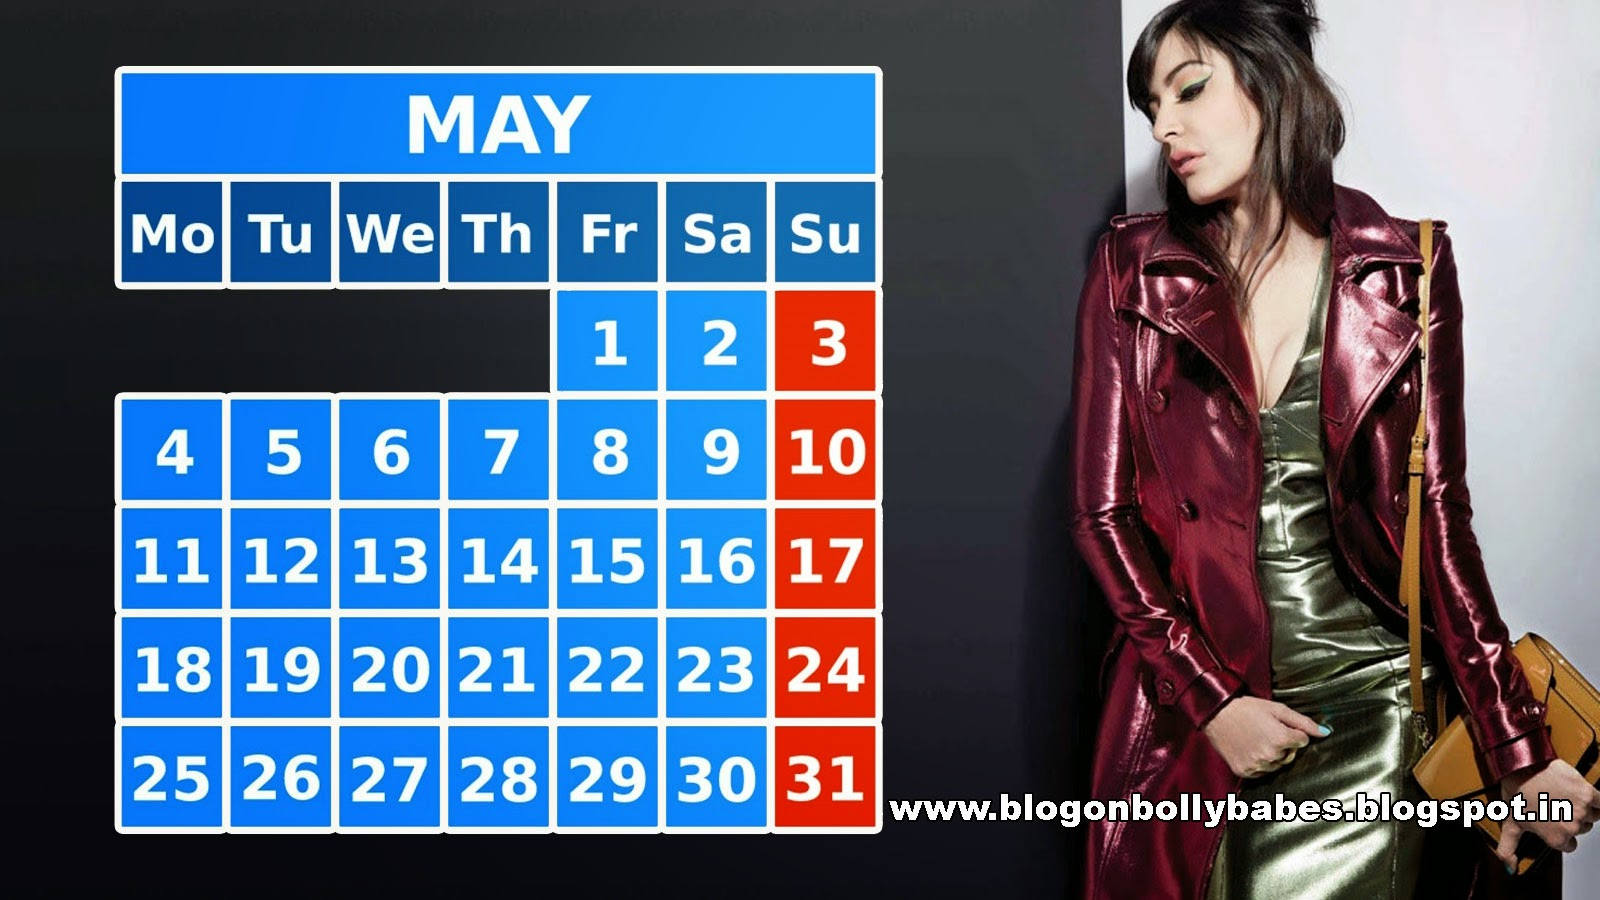 Anushka_Sharma-May-Calendar-Wallpaper-2015